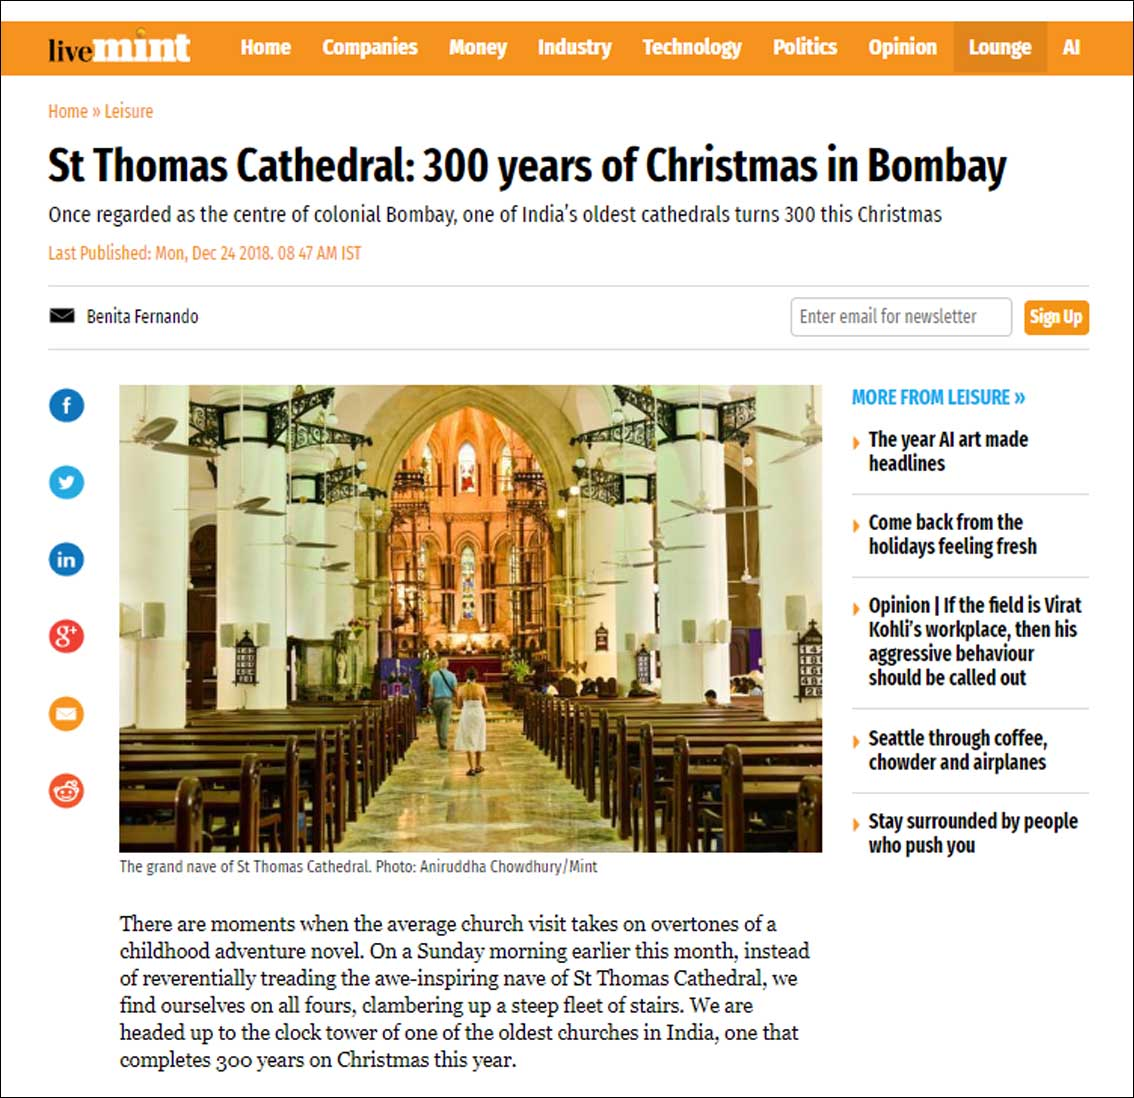 St Thomas Cathedral: 300 years of Christmas in Bombay ,Live Mint - December 2018